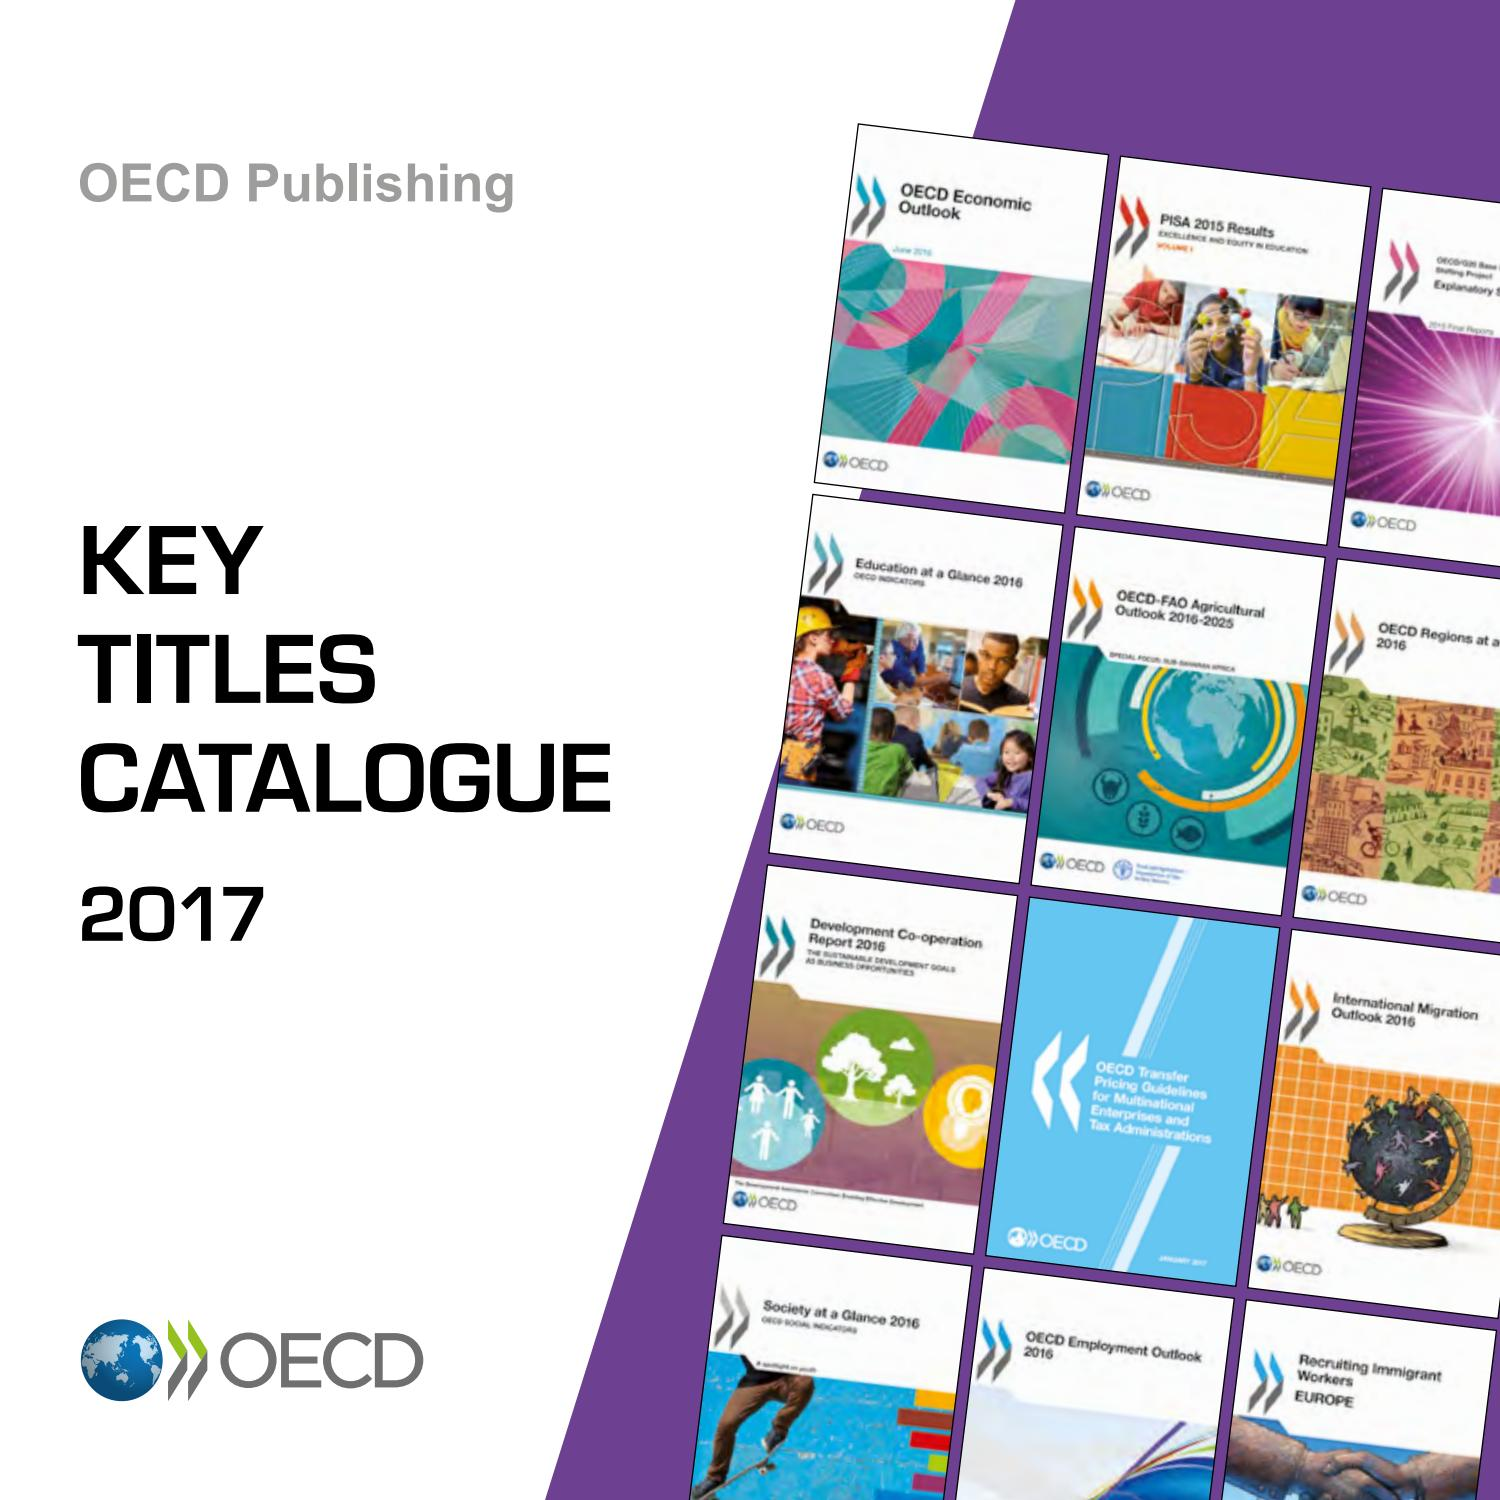 OECD Key Titles Catalogue 2017 by OECD - issuu